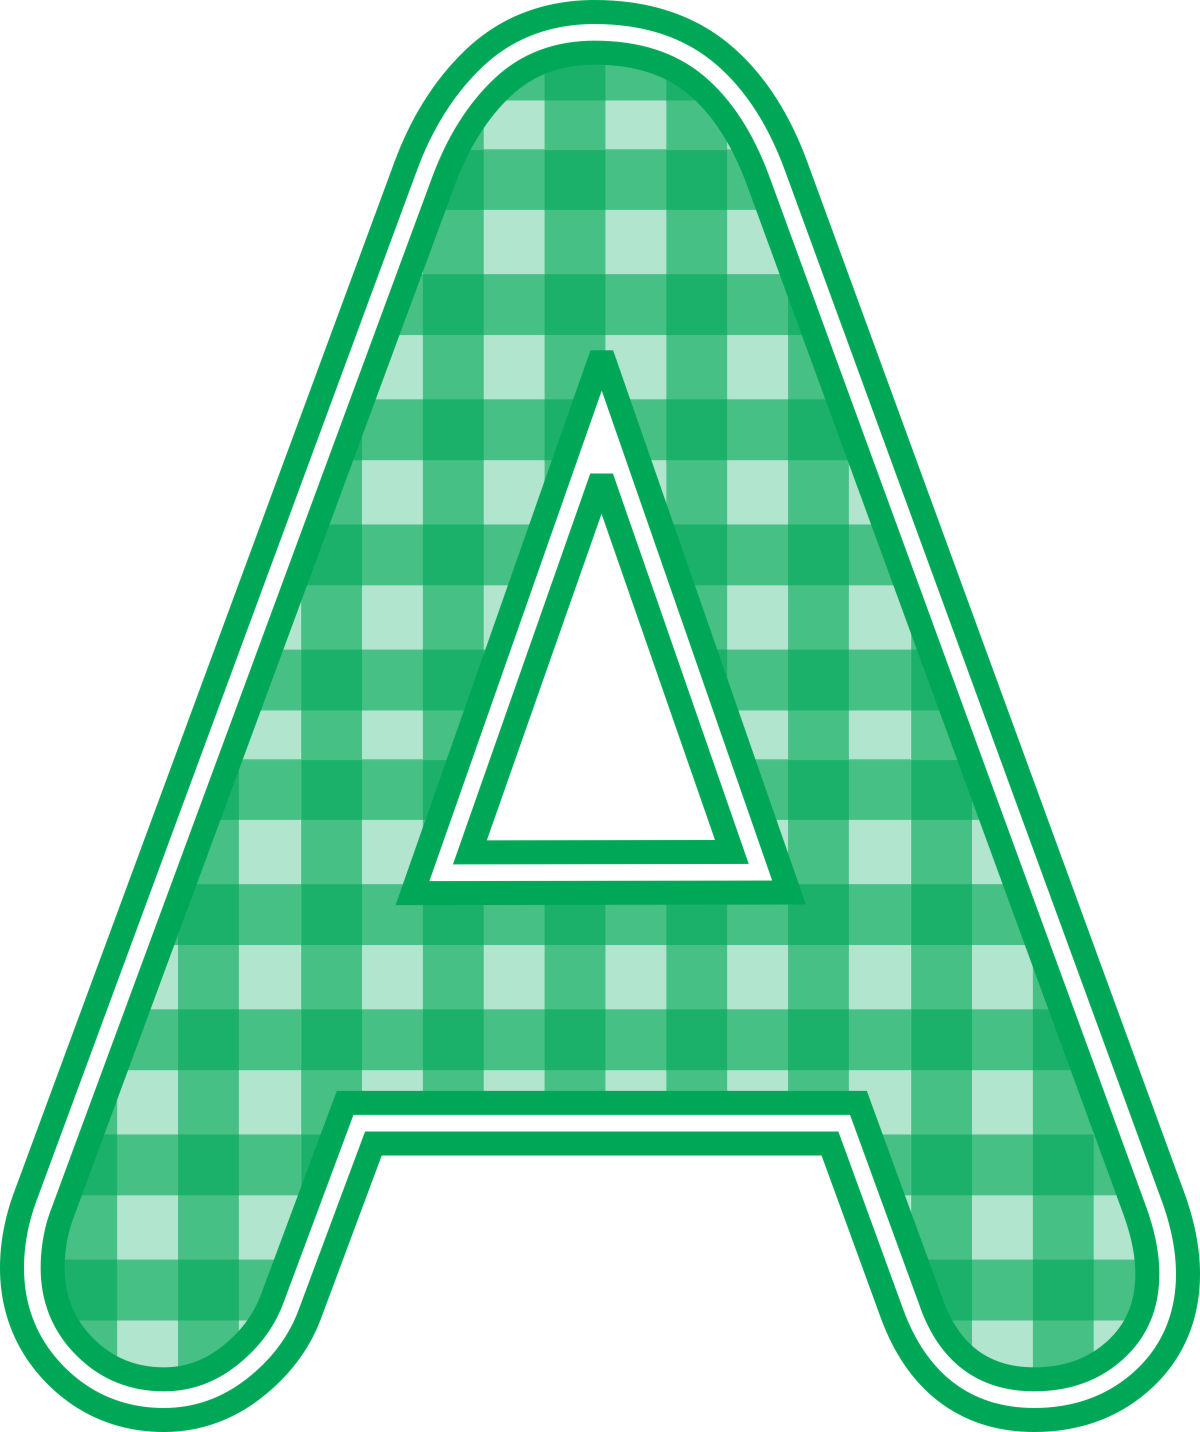 hight resolution of letter a green high quality mobile wallpaper wallpaper and images